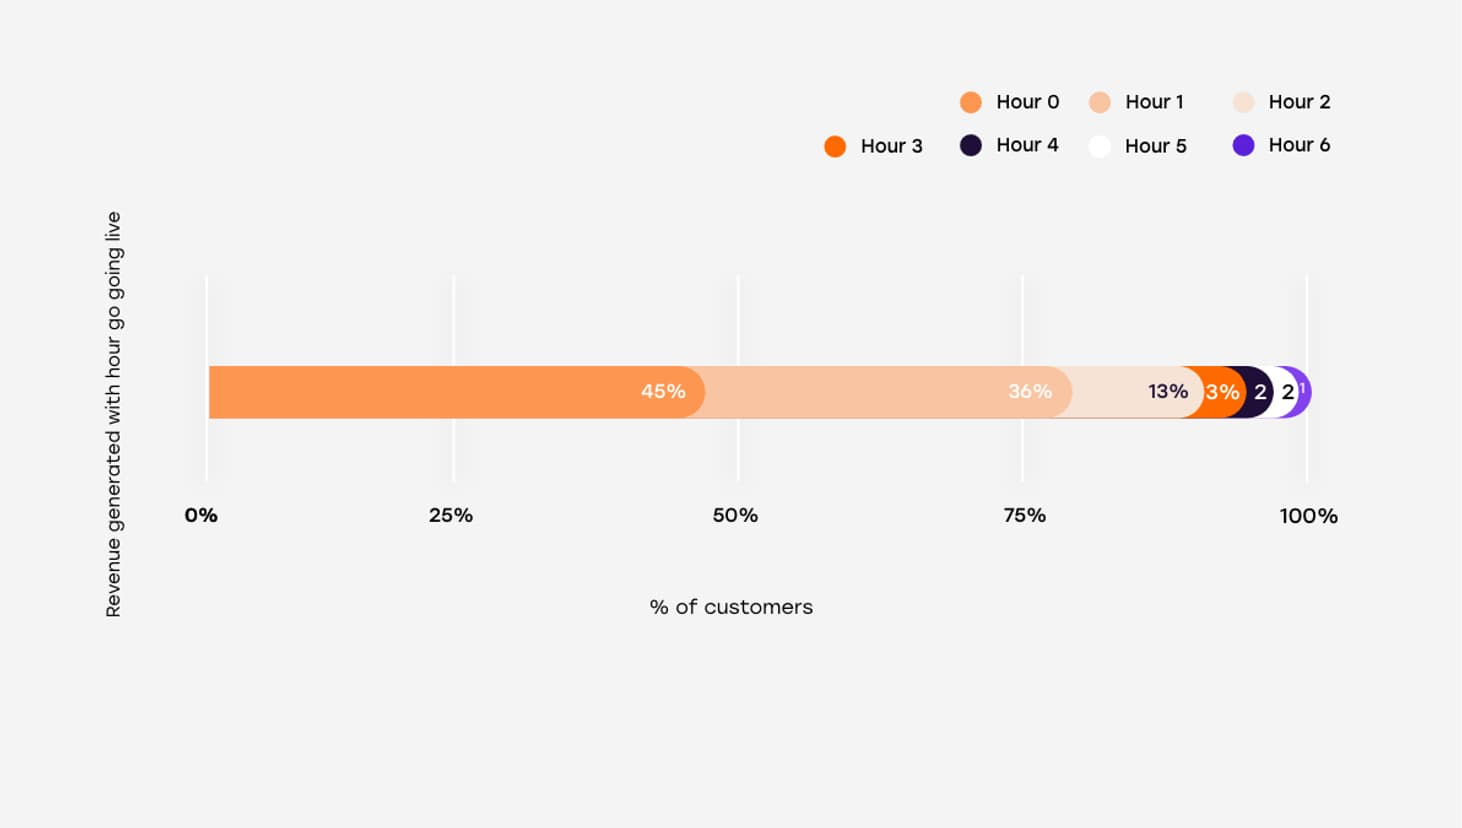 3 yr avg customers live on day 1 vs hour of revenue generated 2x